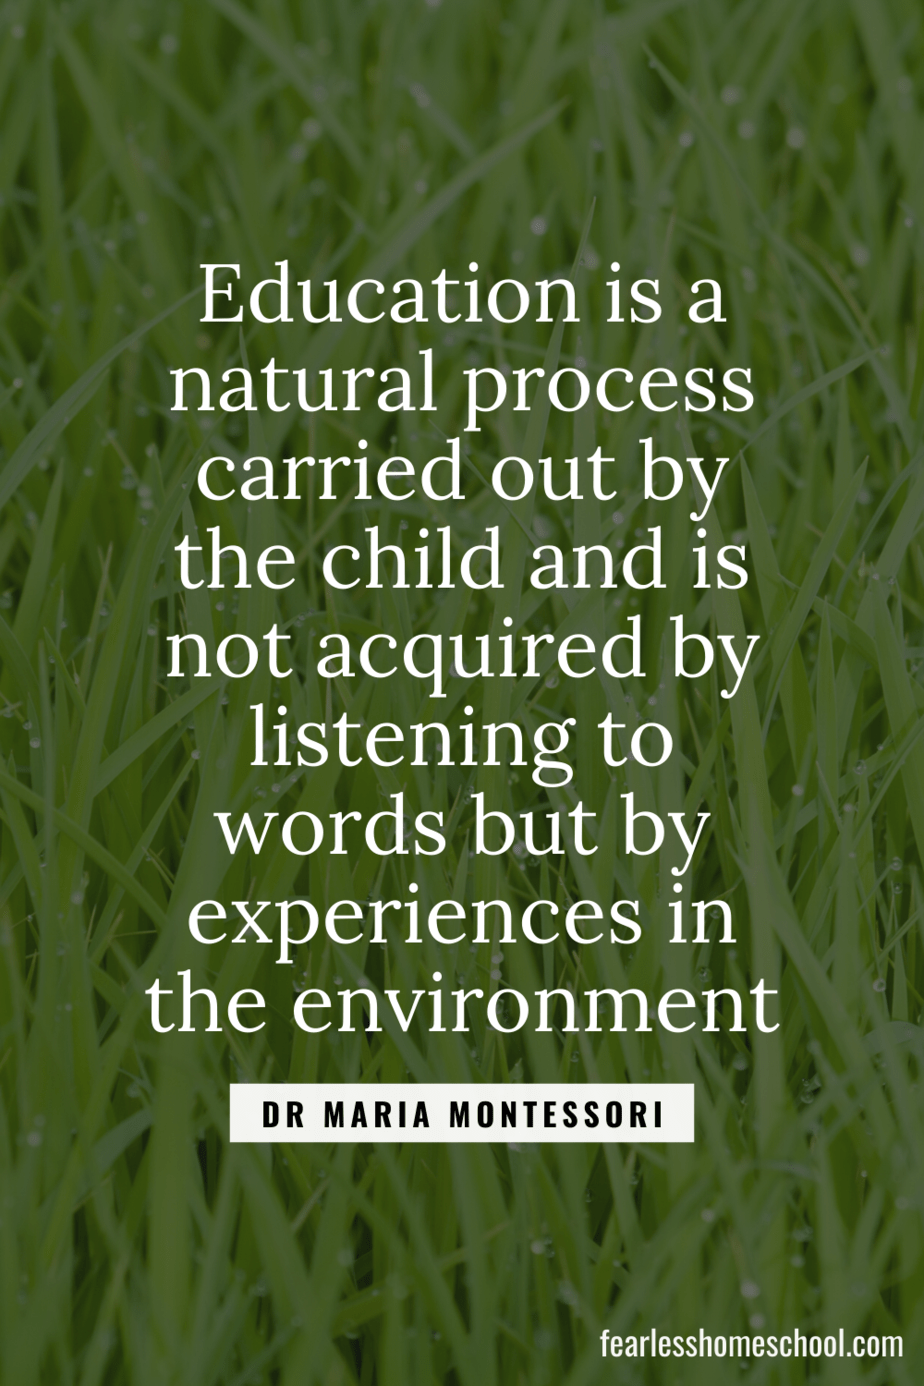 Education is a natural process carried out by the child and is not acquired by listening to words but by experiences in the environment dr maria montessori homeschooling quote